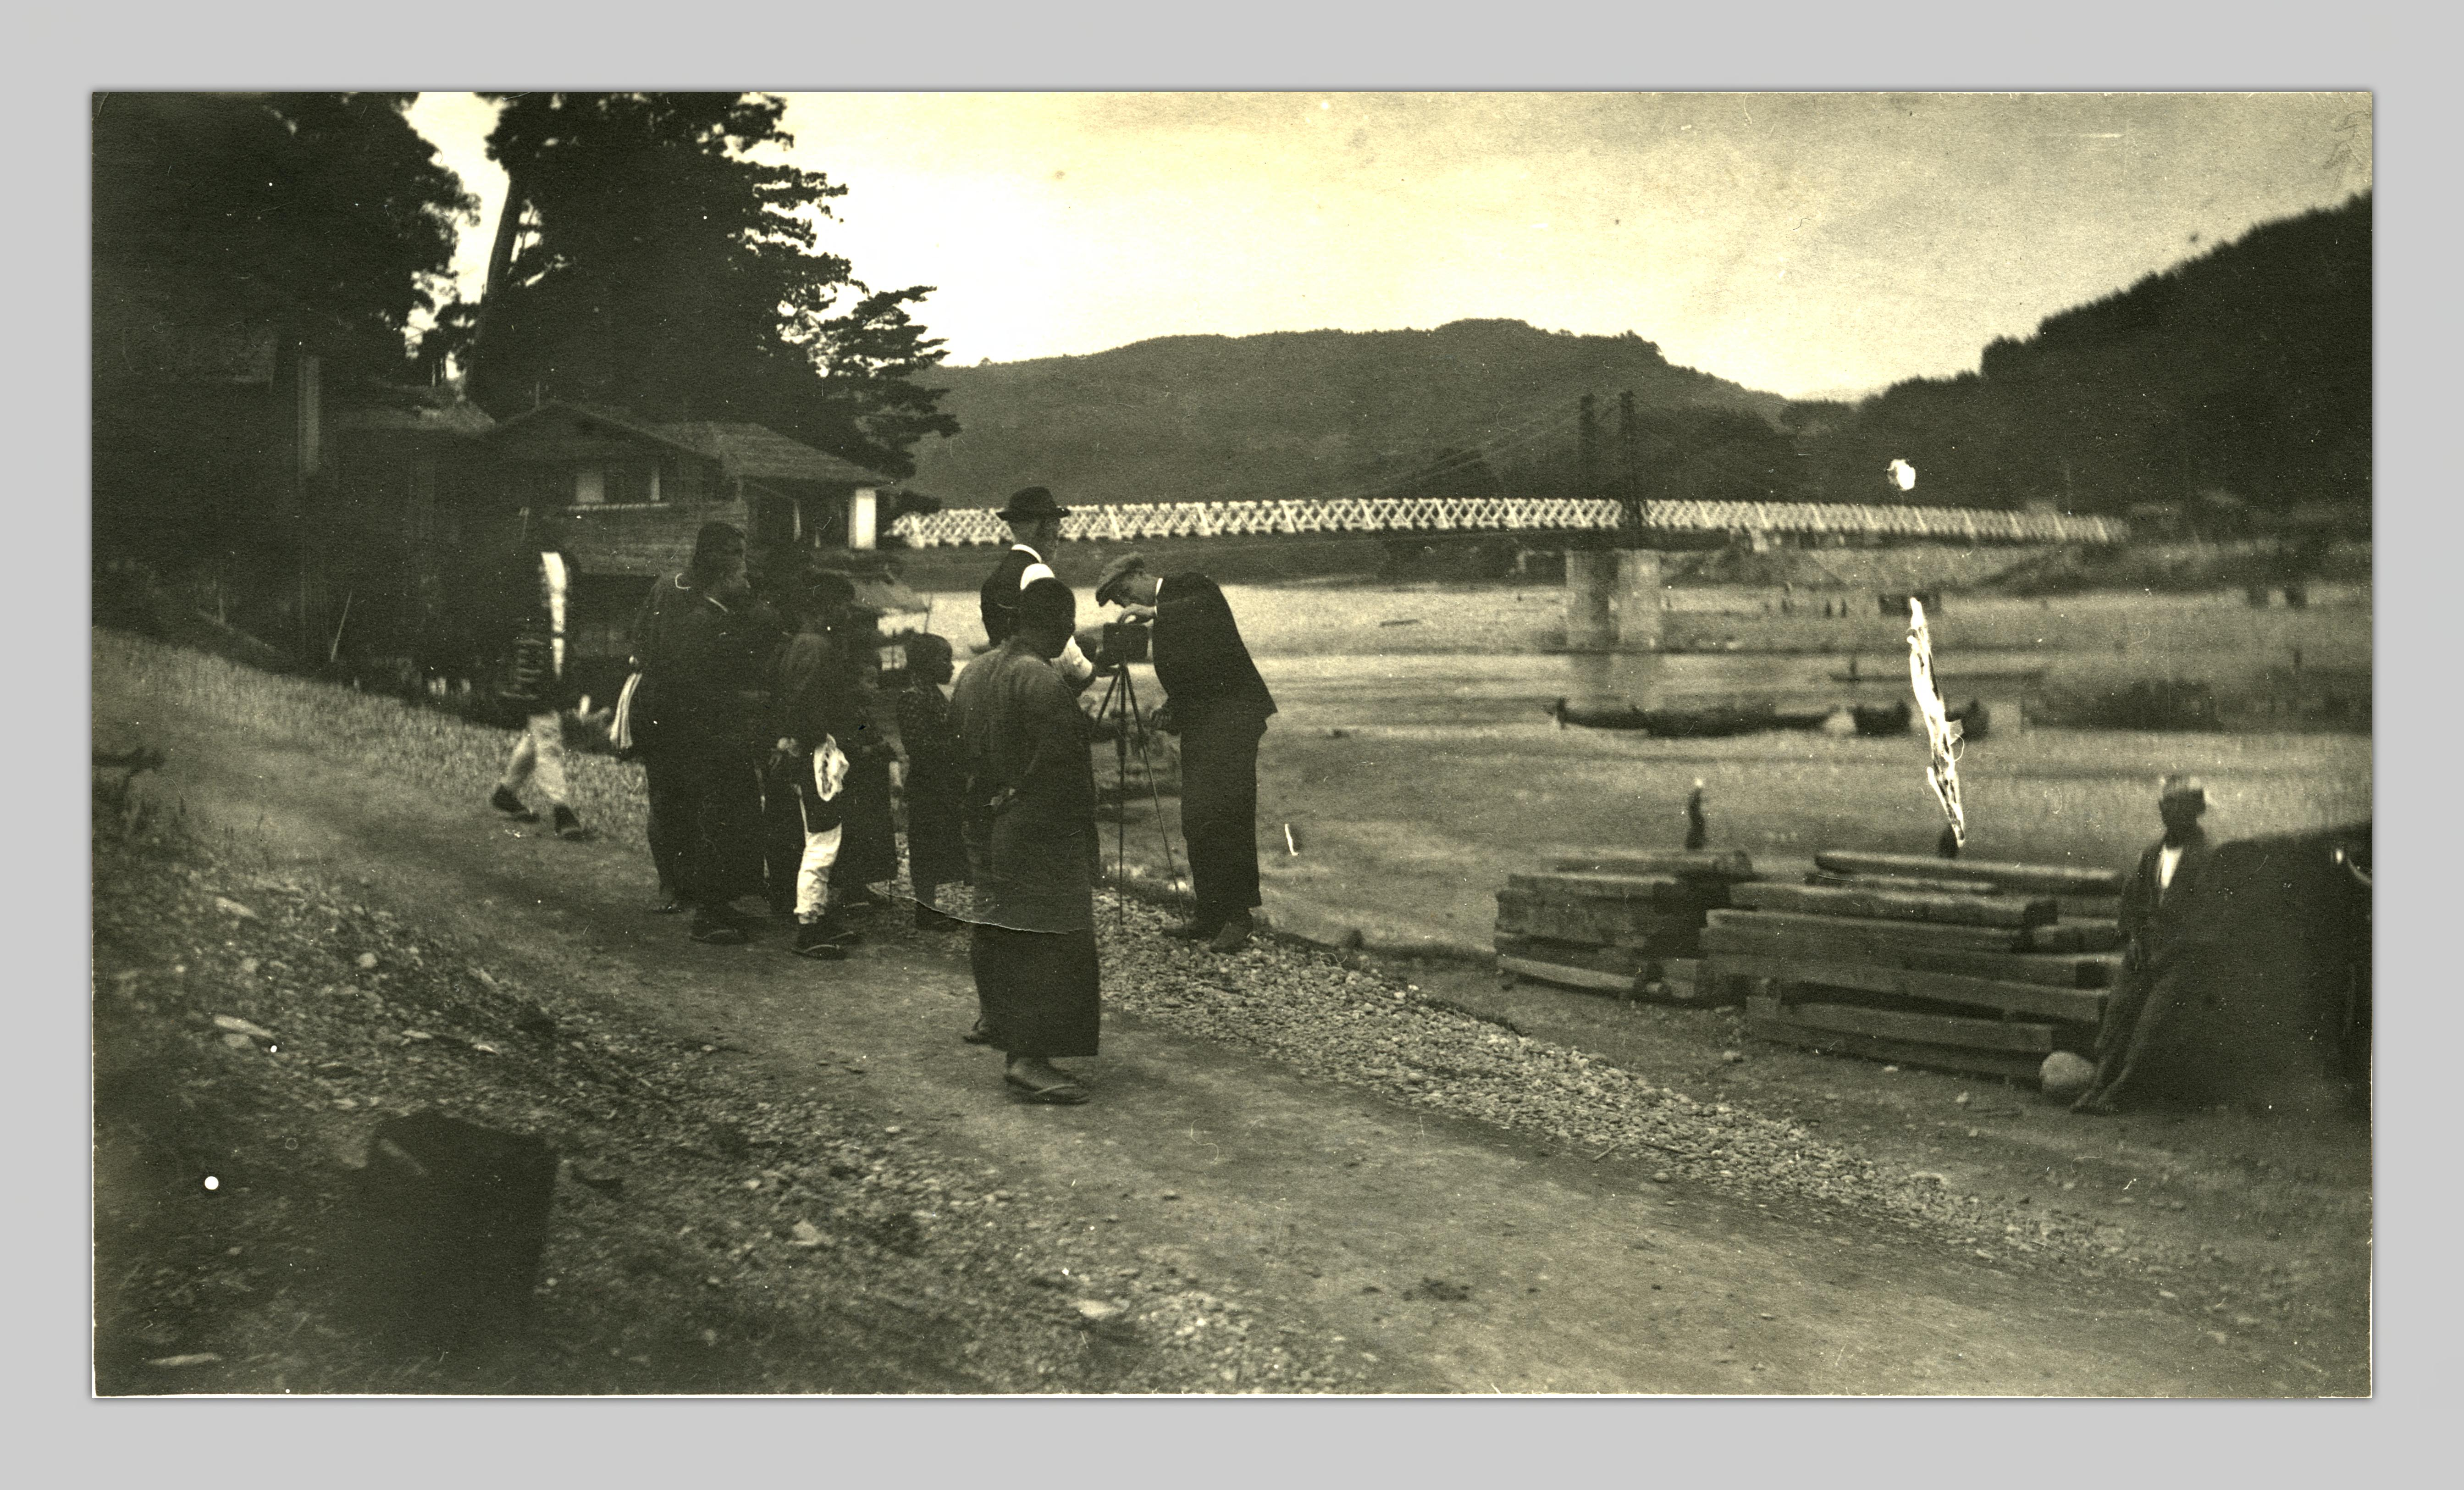 A wide shot of John Cooper Robinson and his unidentified companion adjusting a camera near a river. A bridge is visible in the background.